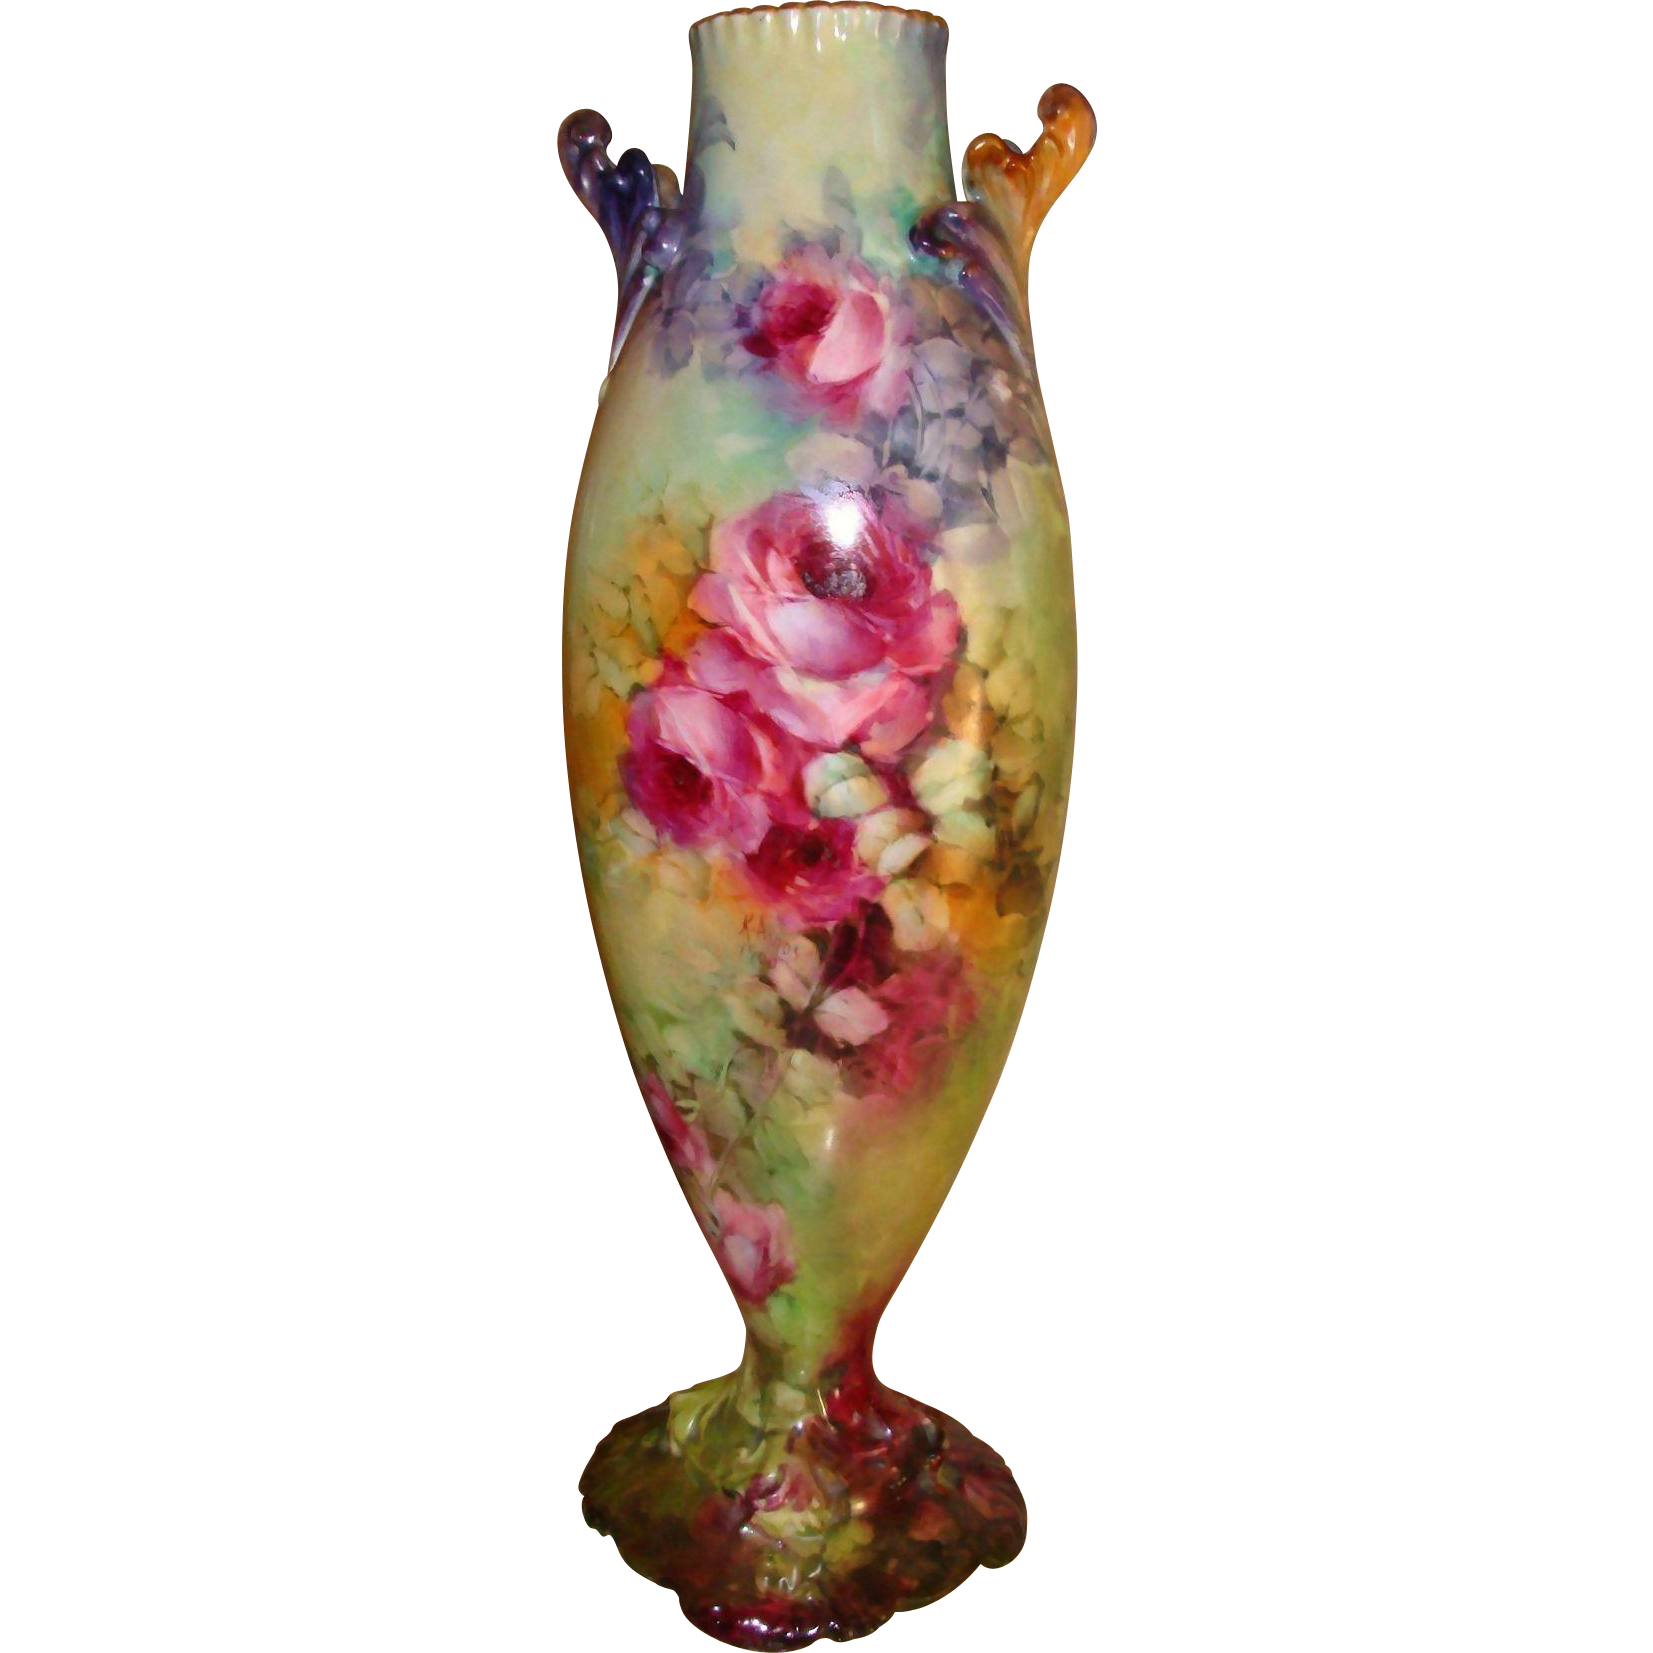 Phenomenal Antique Limoges France Hand Painted Porcelain Victorian Vase Superb Roses